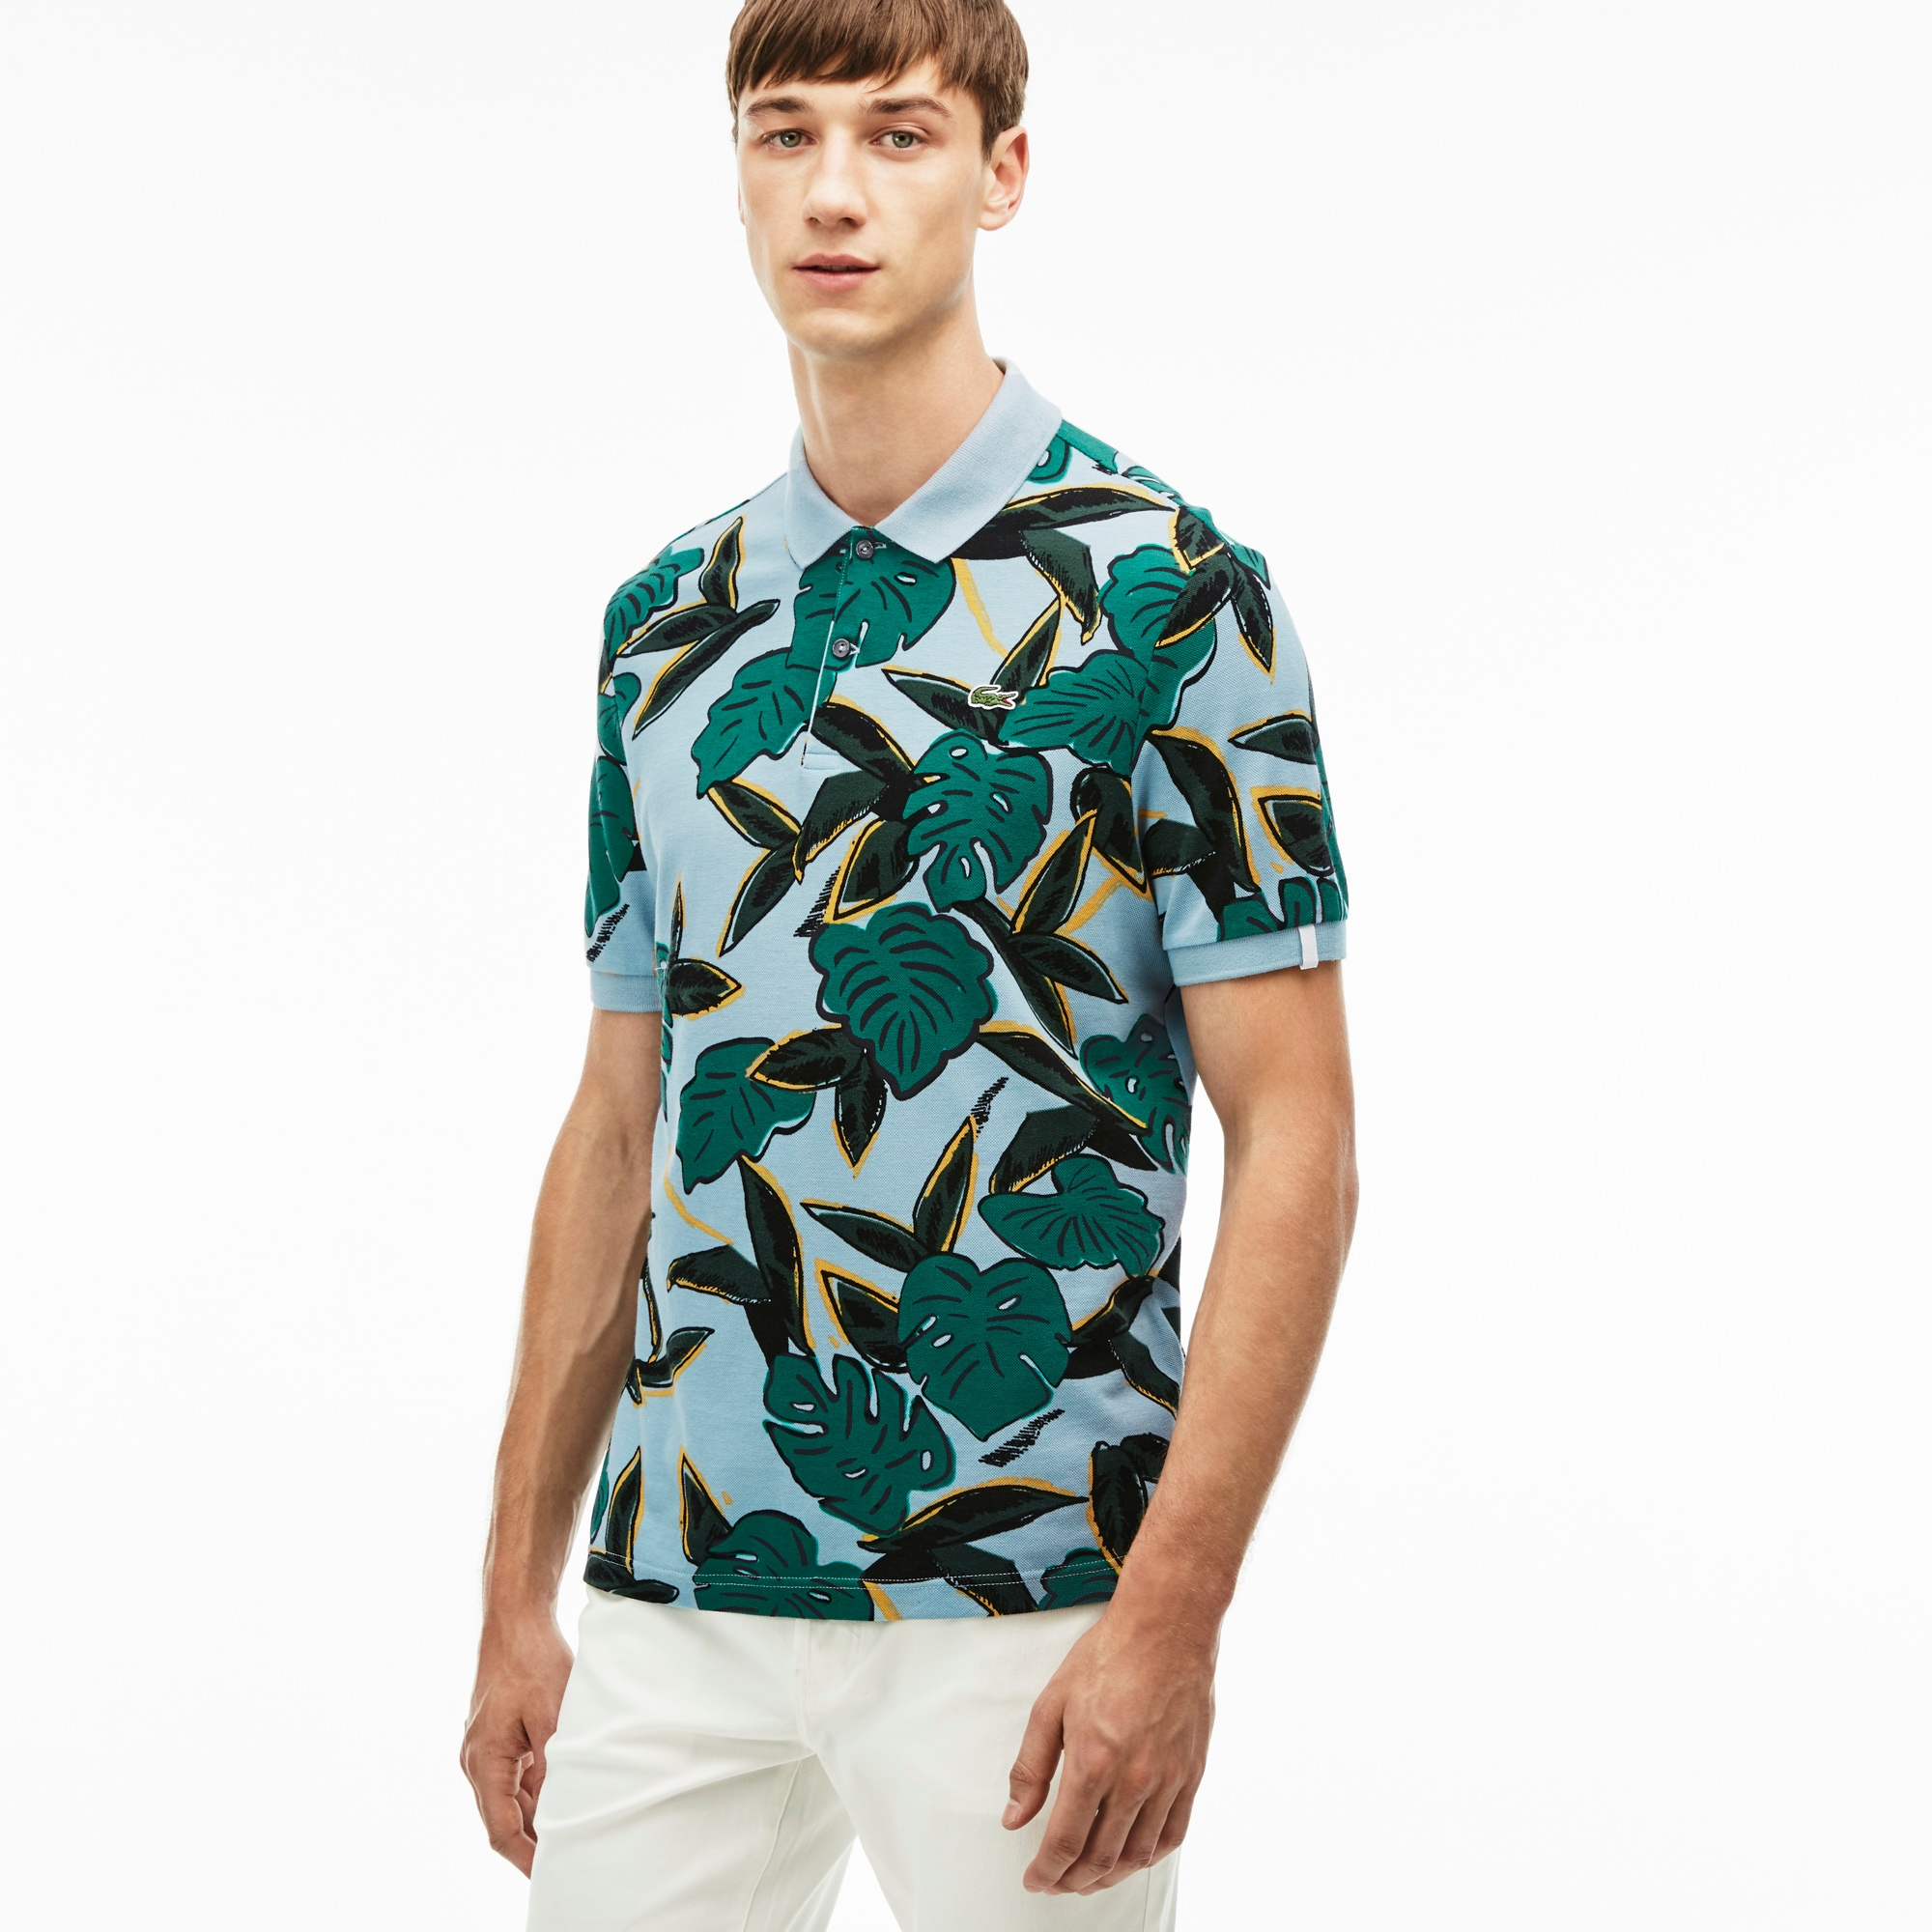 Men's L!VE Regular Fit Tropical Print Petit Piqué Polo Shirt